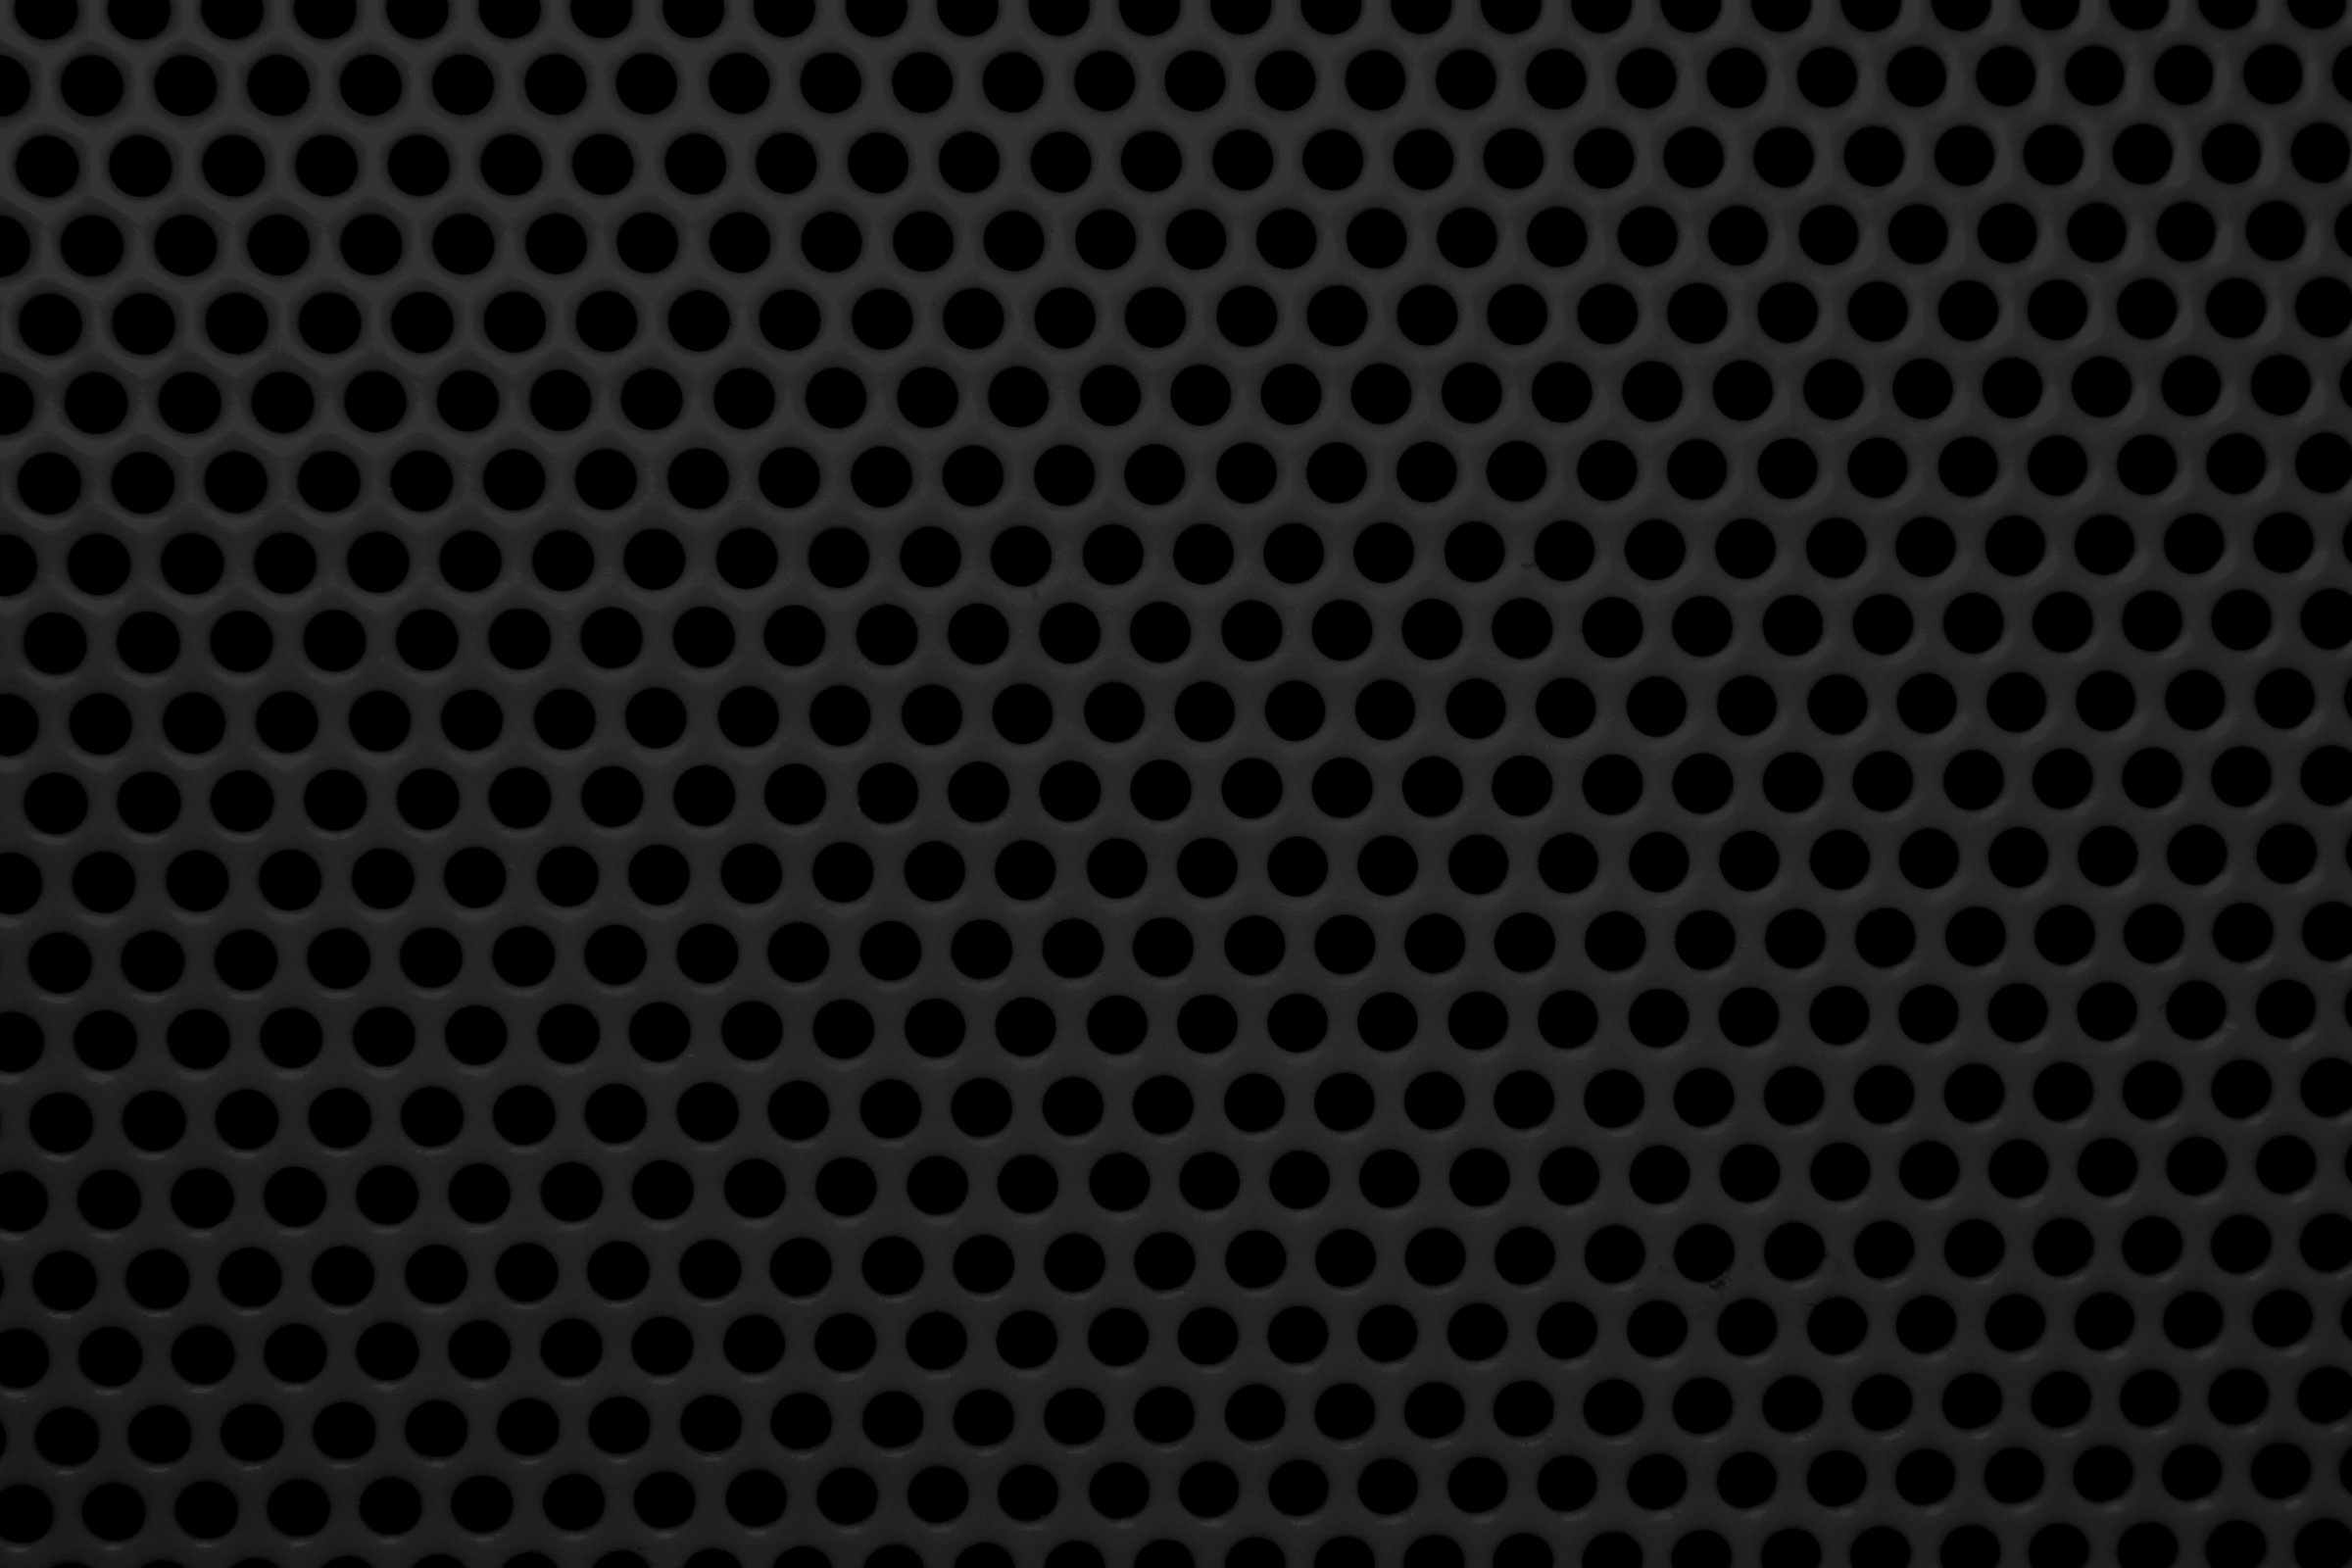 Black metal mesh with round holes texturejpg 24001600